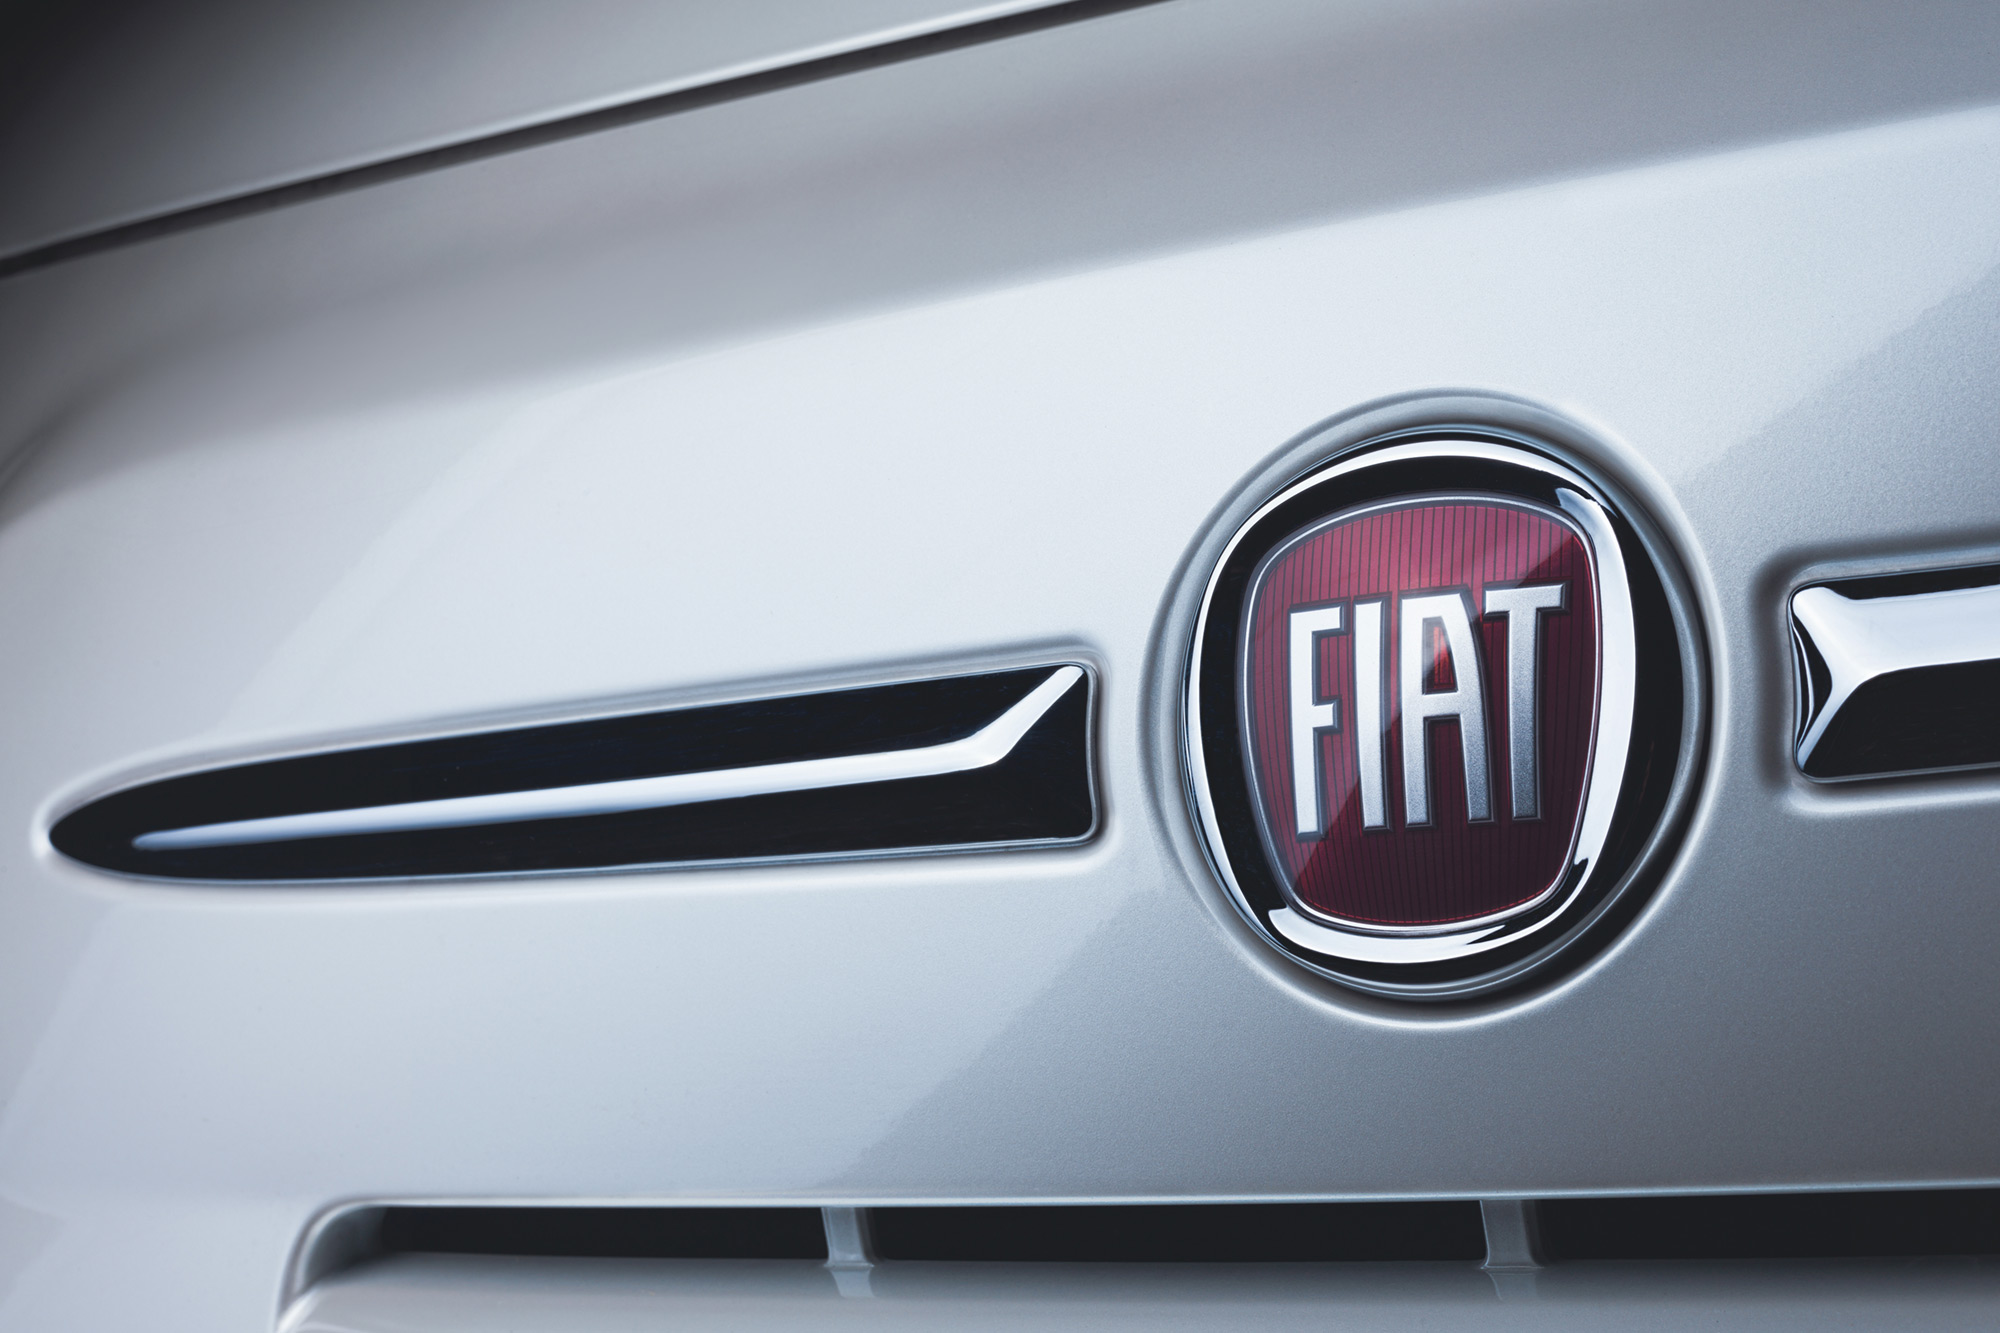 Fiat car photographer